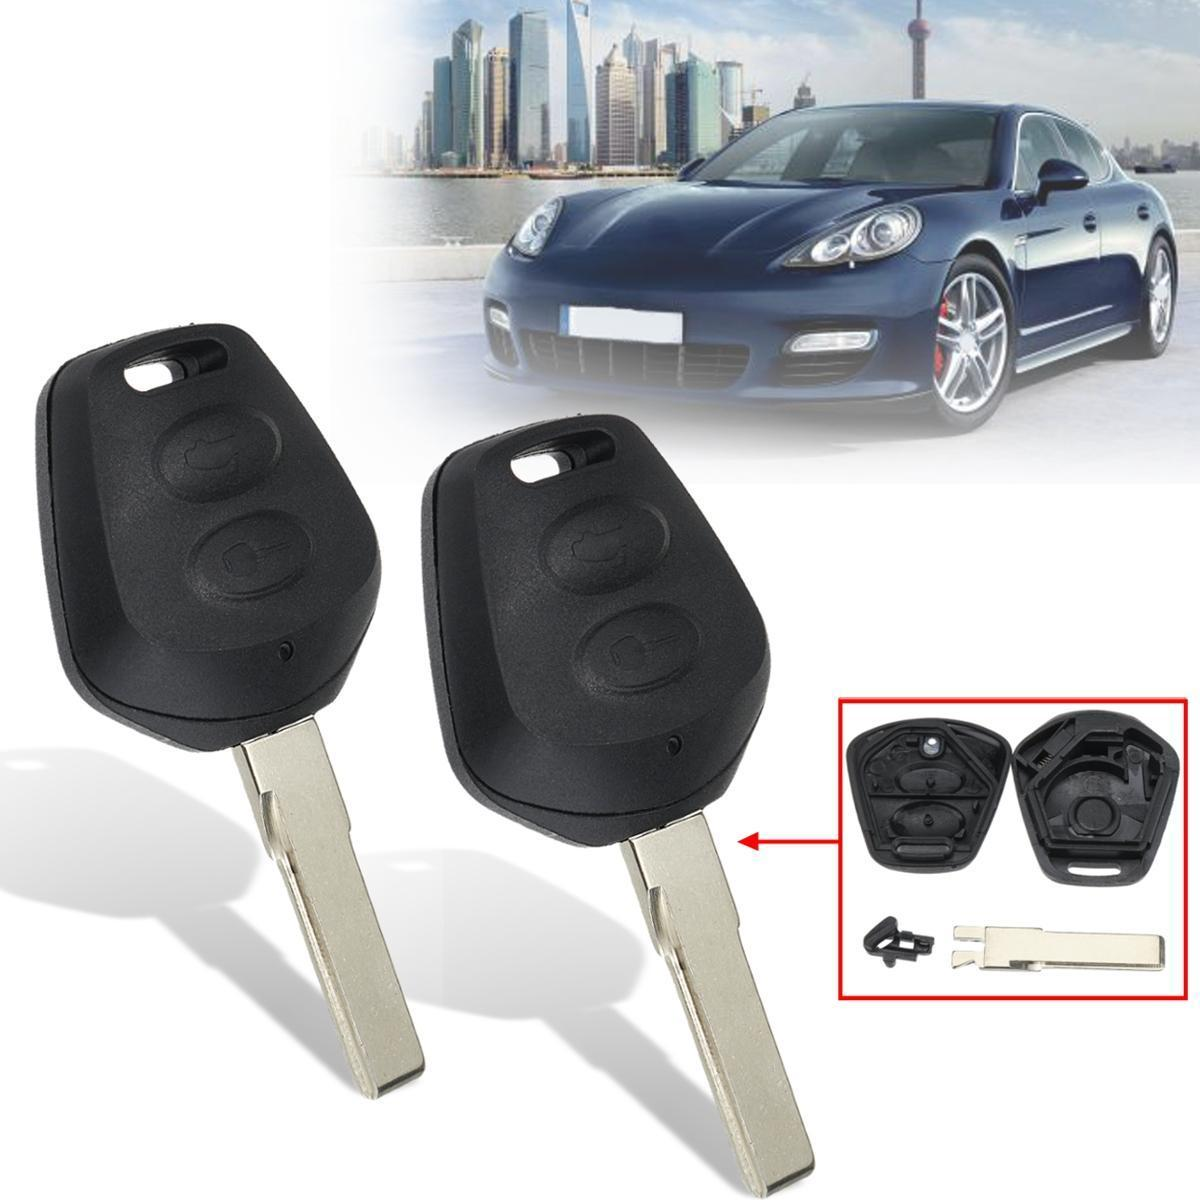 2Pcs 2 Buttons Remote Key Fob Case Shell For Porsche Boxster S 986 911 996